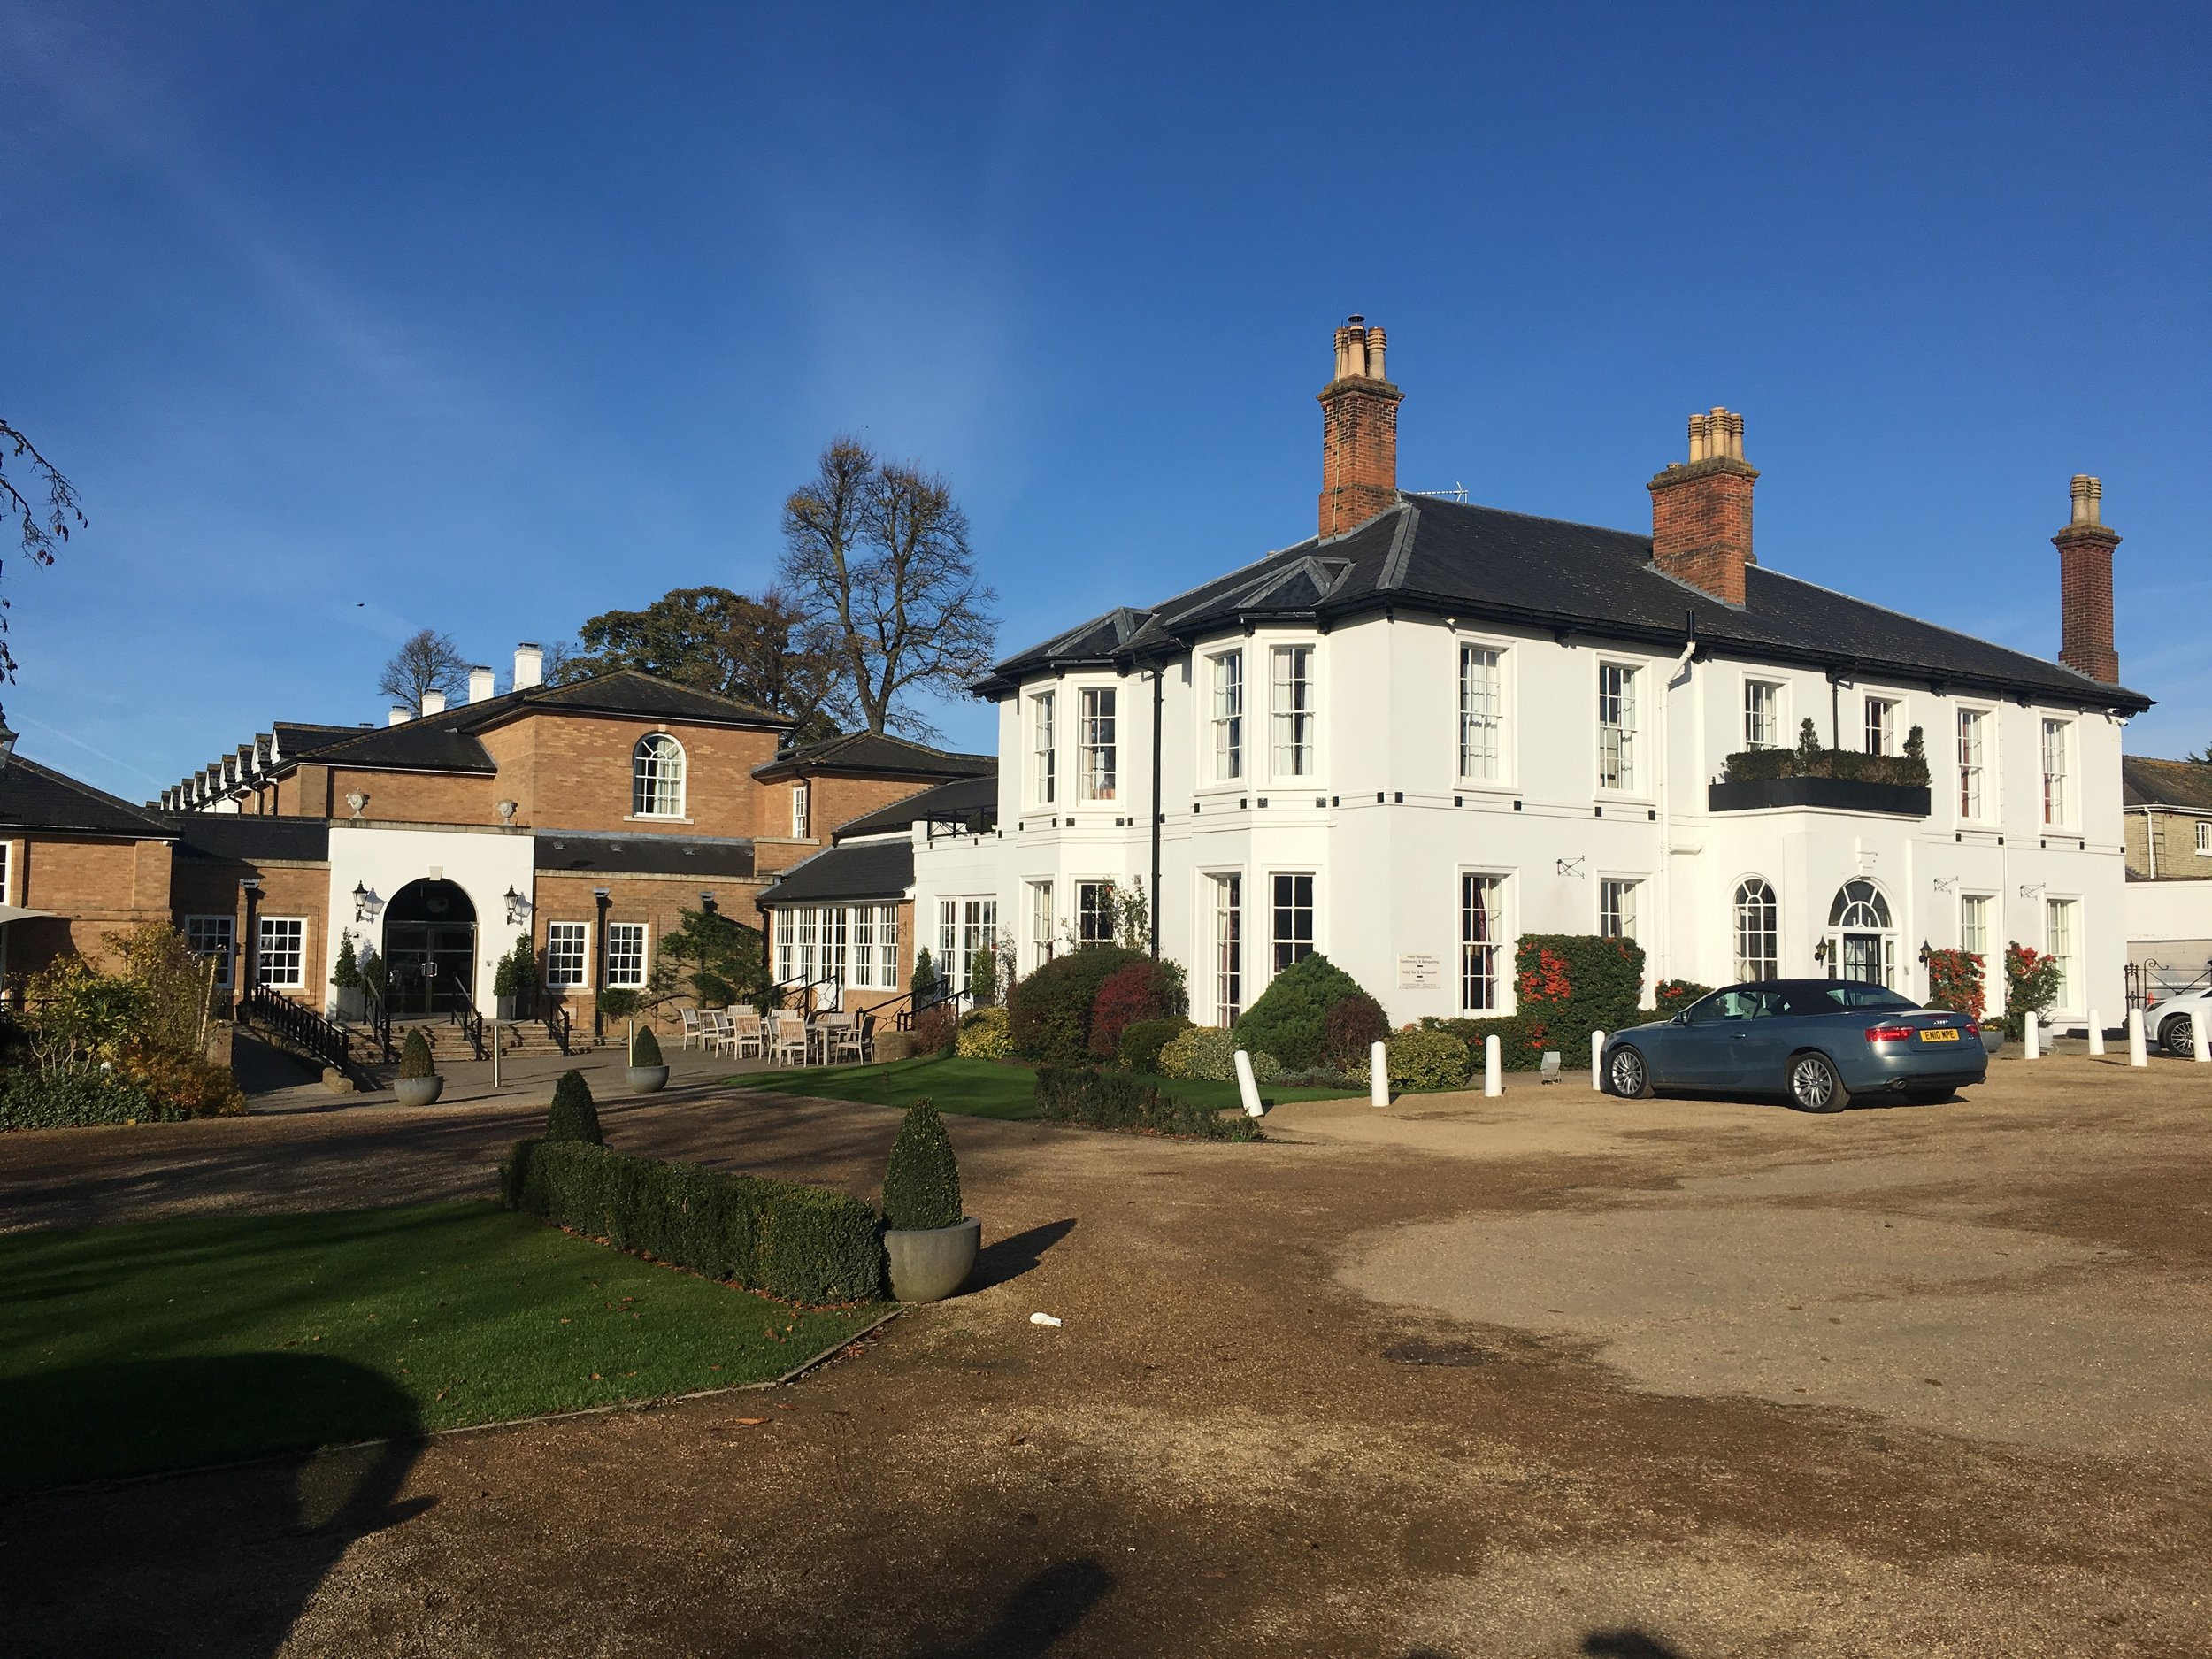 The Bedford Lodge Hotel, outside Newmarket in Suffolk